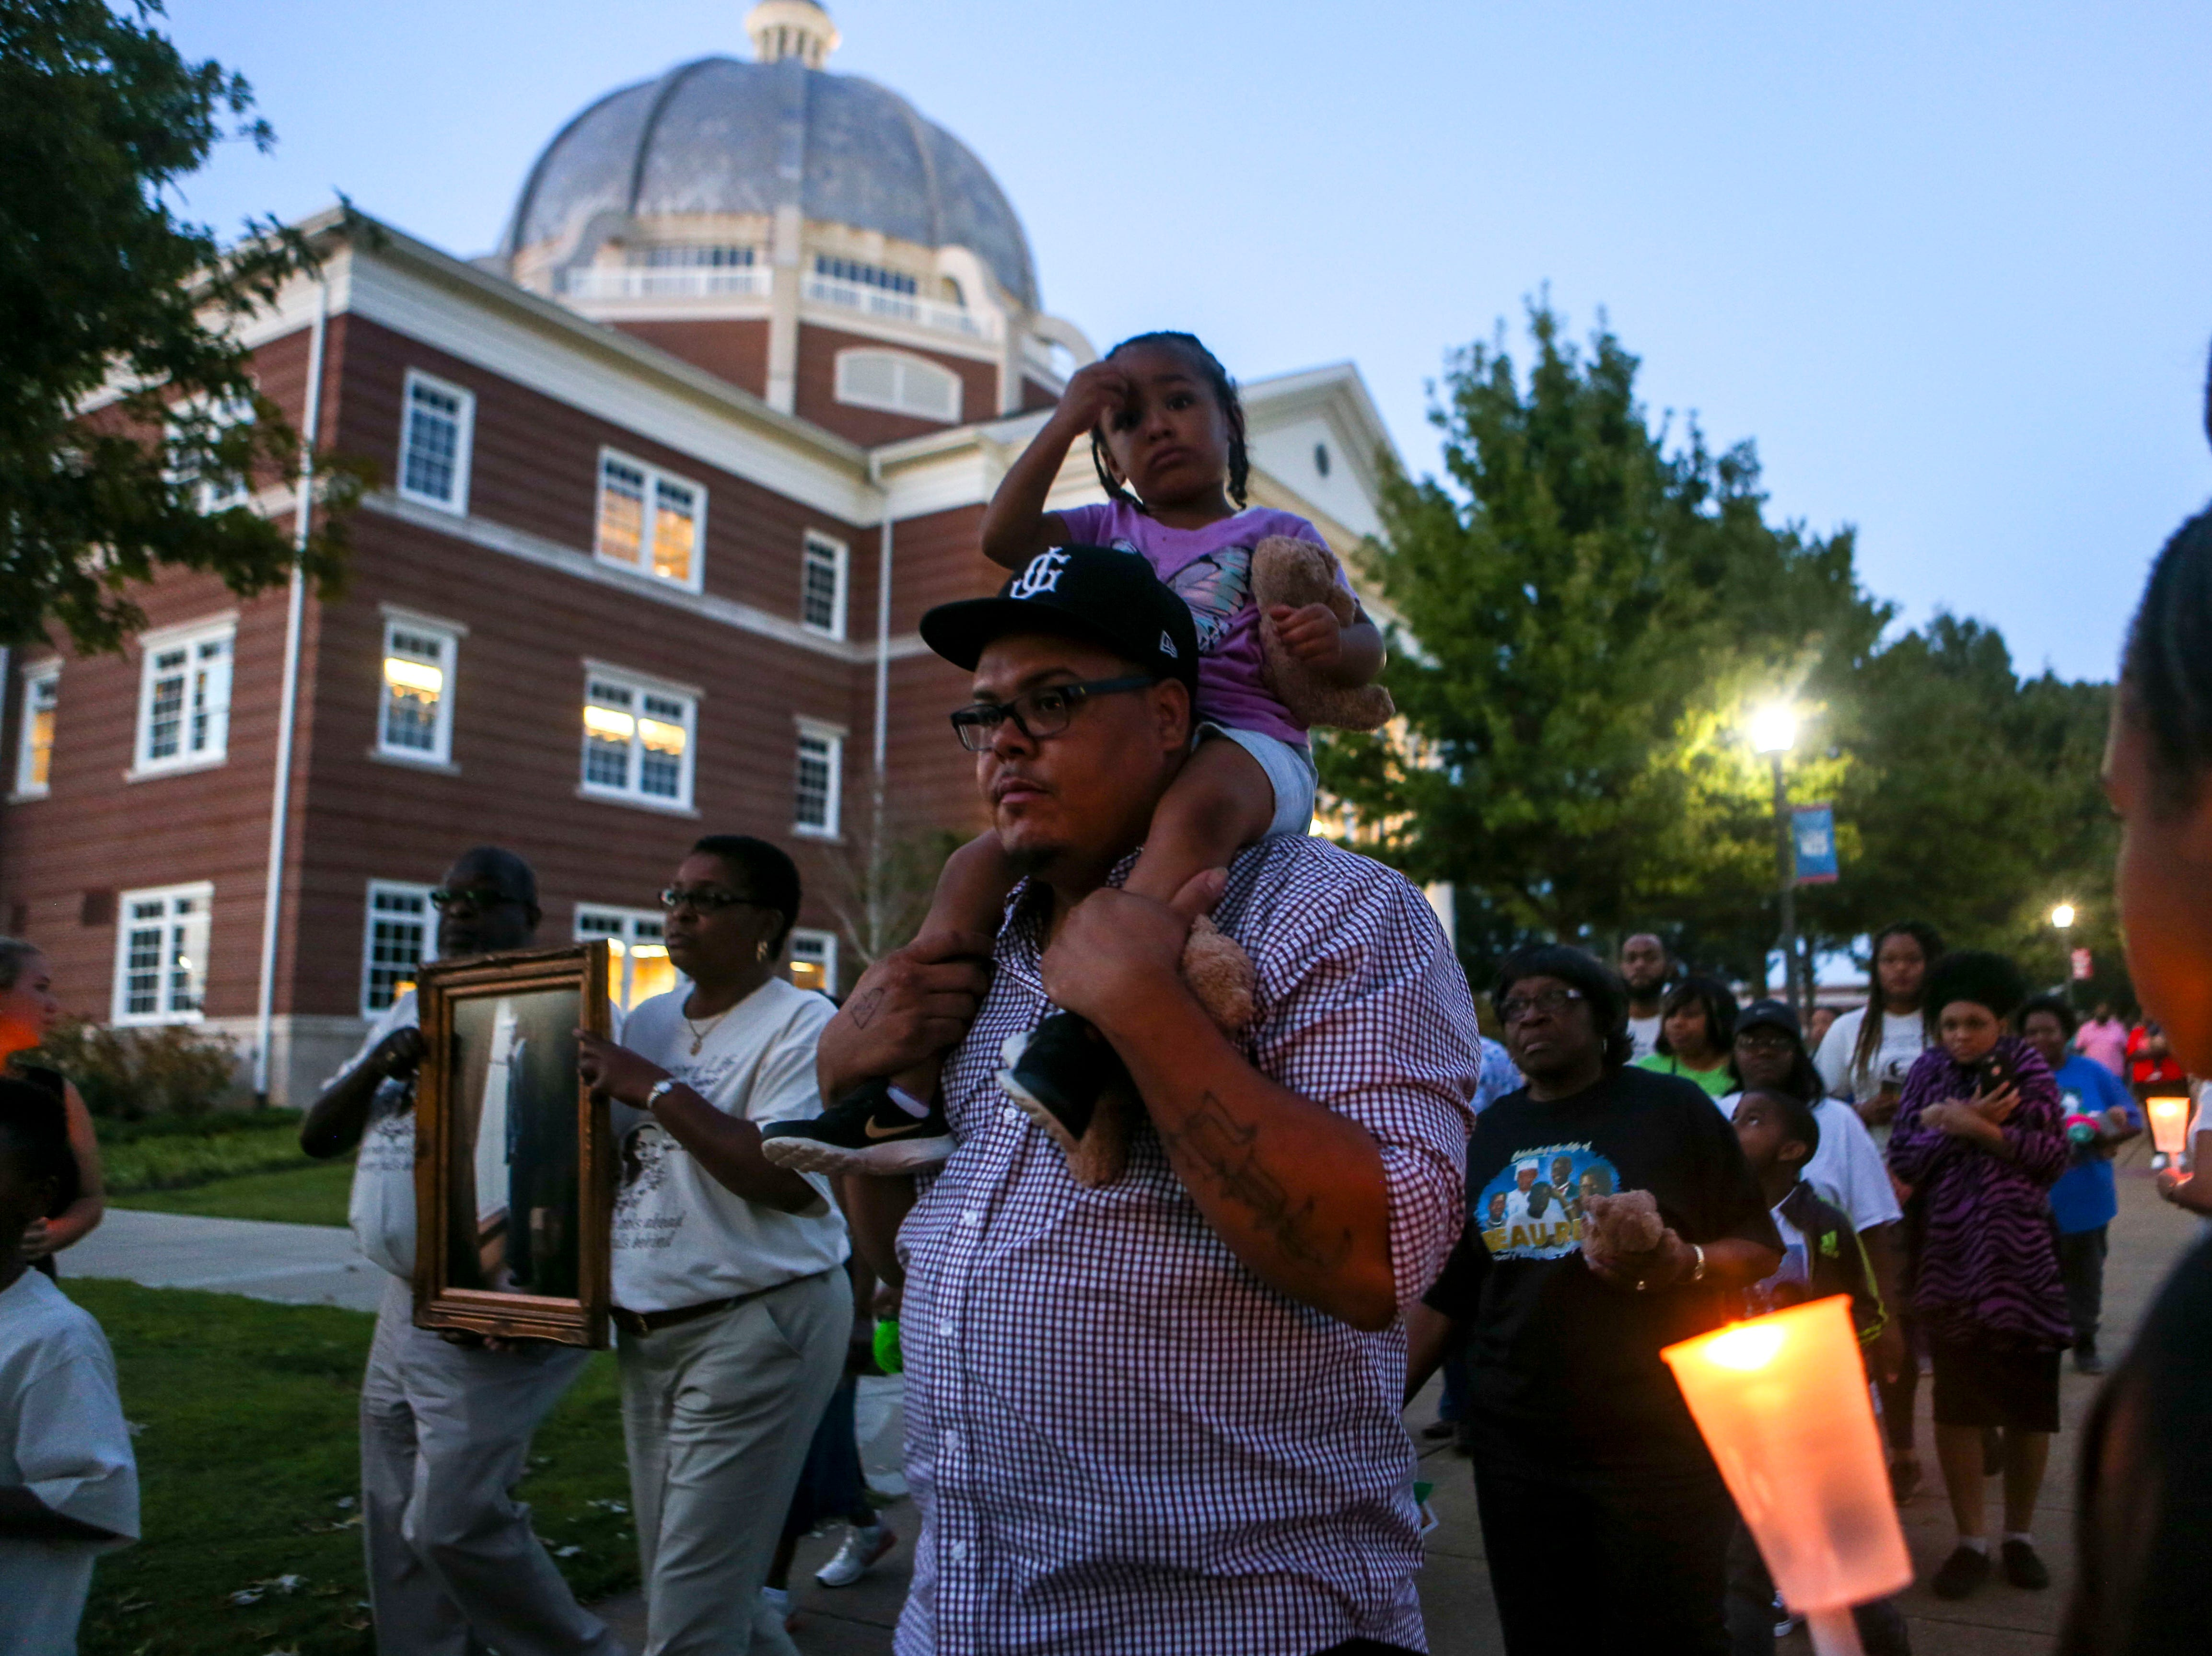 Attendees of the event walk through a vigil path flanked by Union University students with candles during the annual Remember Me Walk hosted at Union University in Jackson, Tenn., on Monday, Oct. 1, 2018.